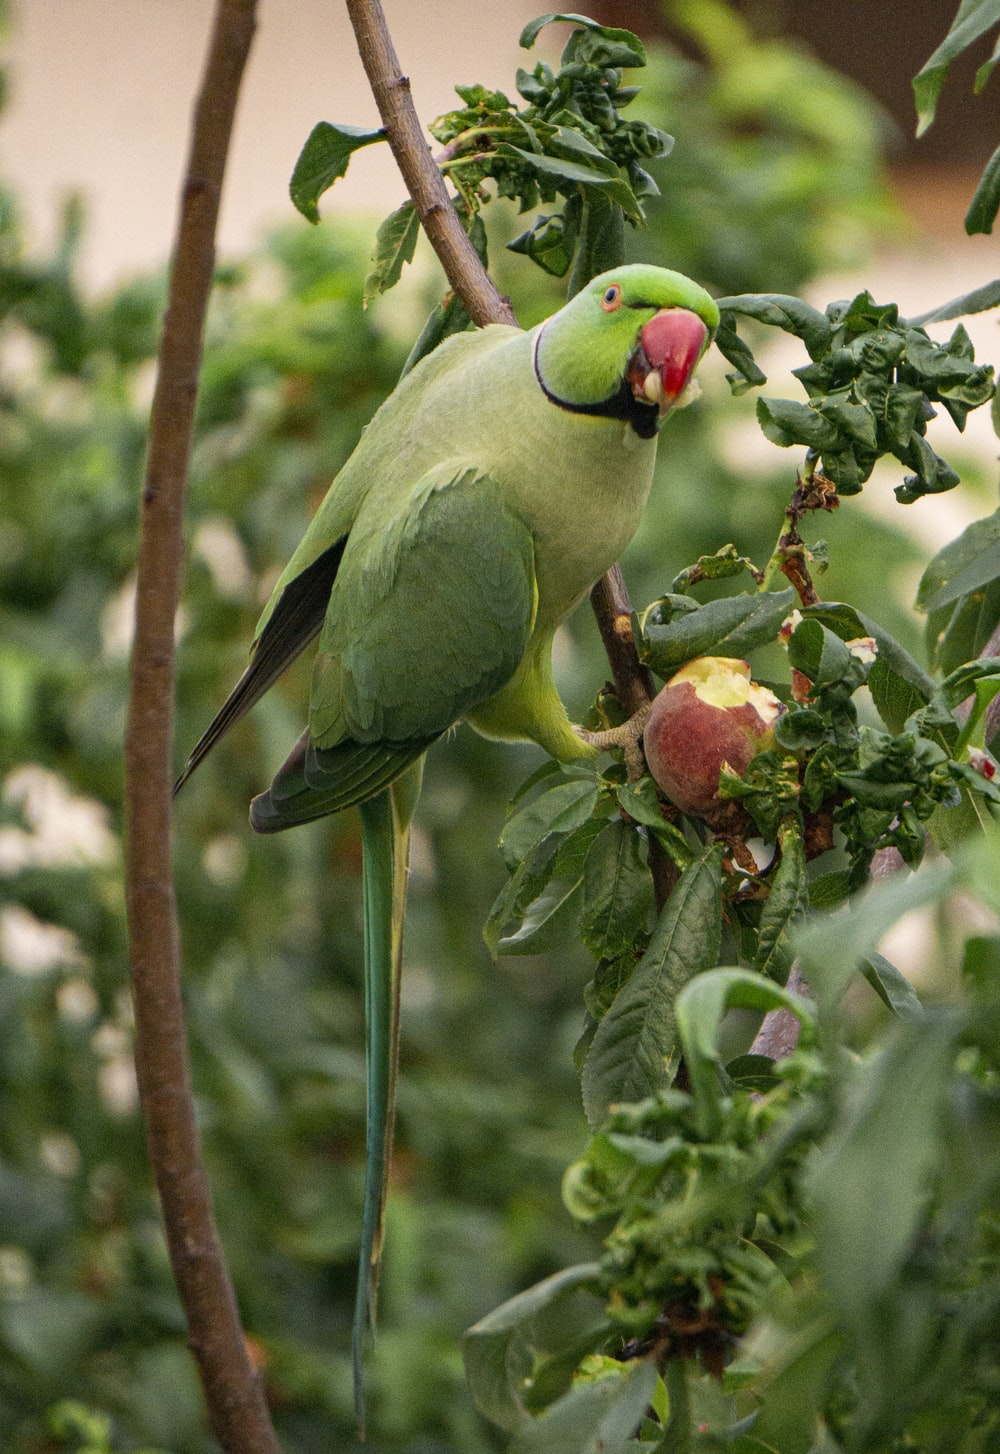 green and yellow bird on tree branch